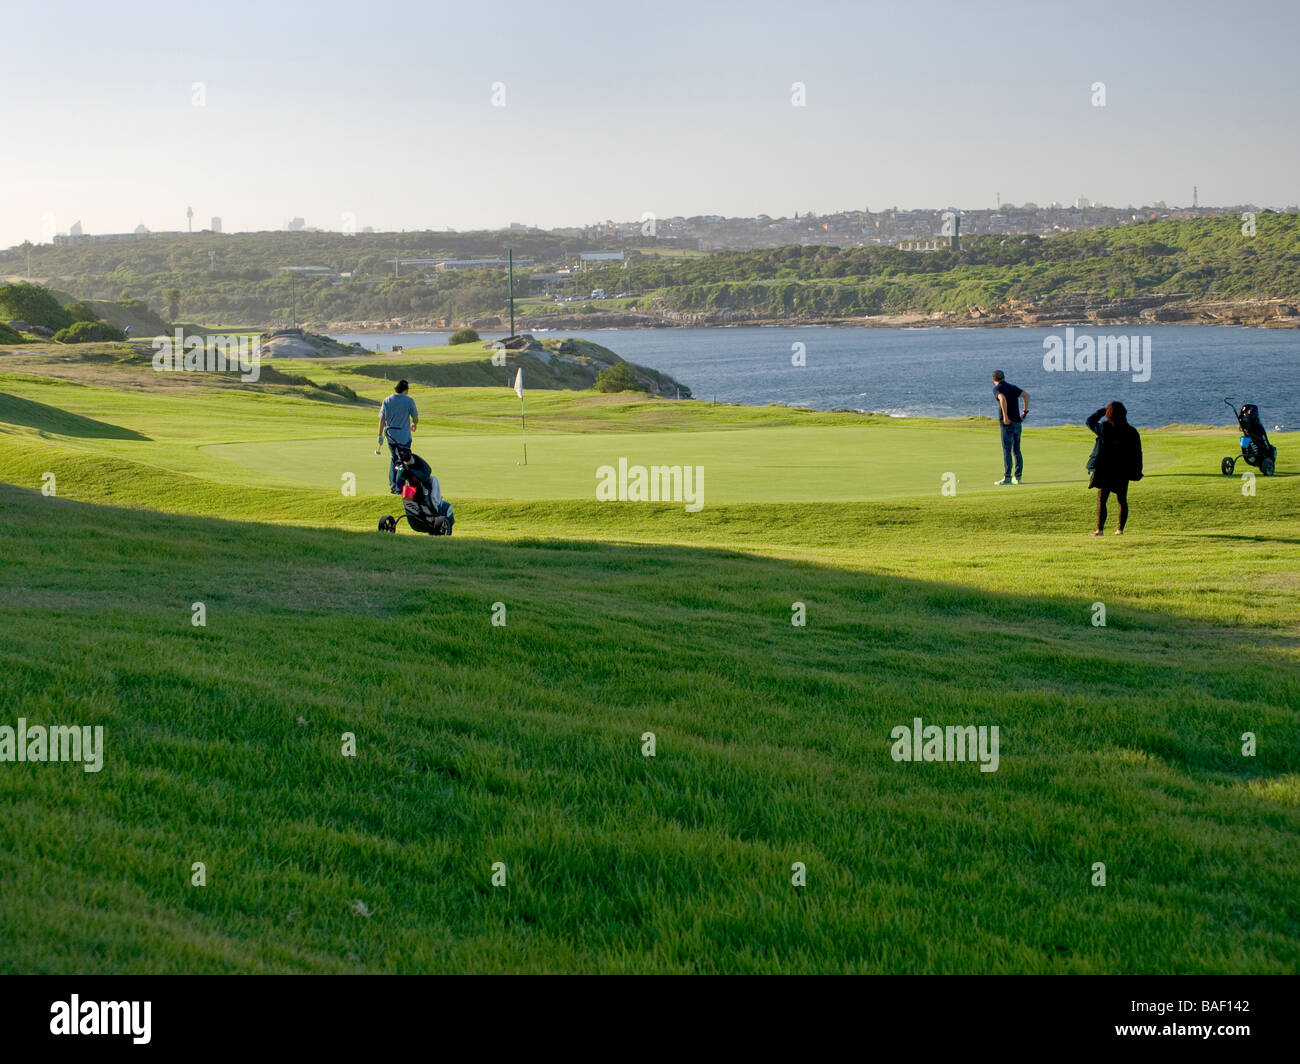 Golfers on green about to putt - Stock Image